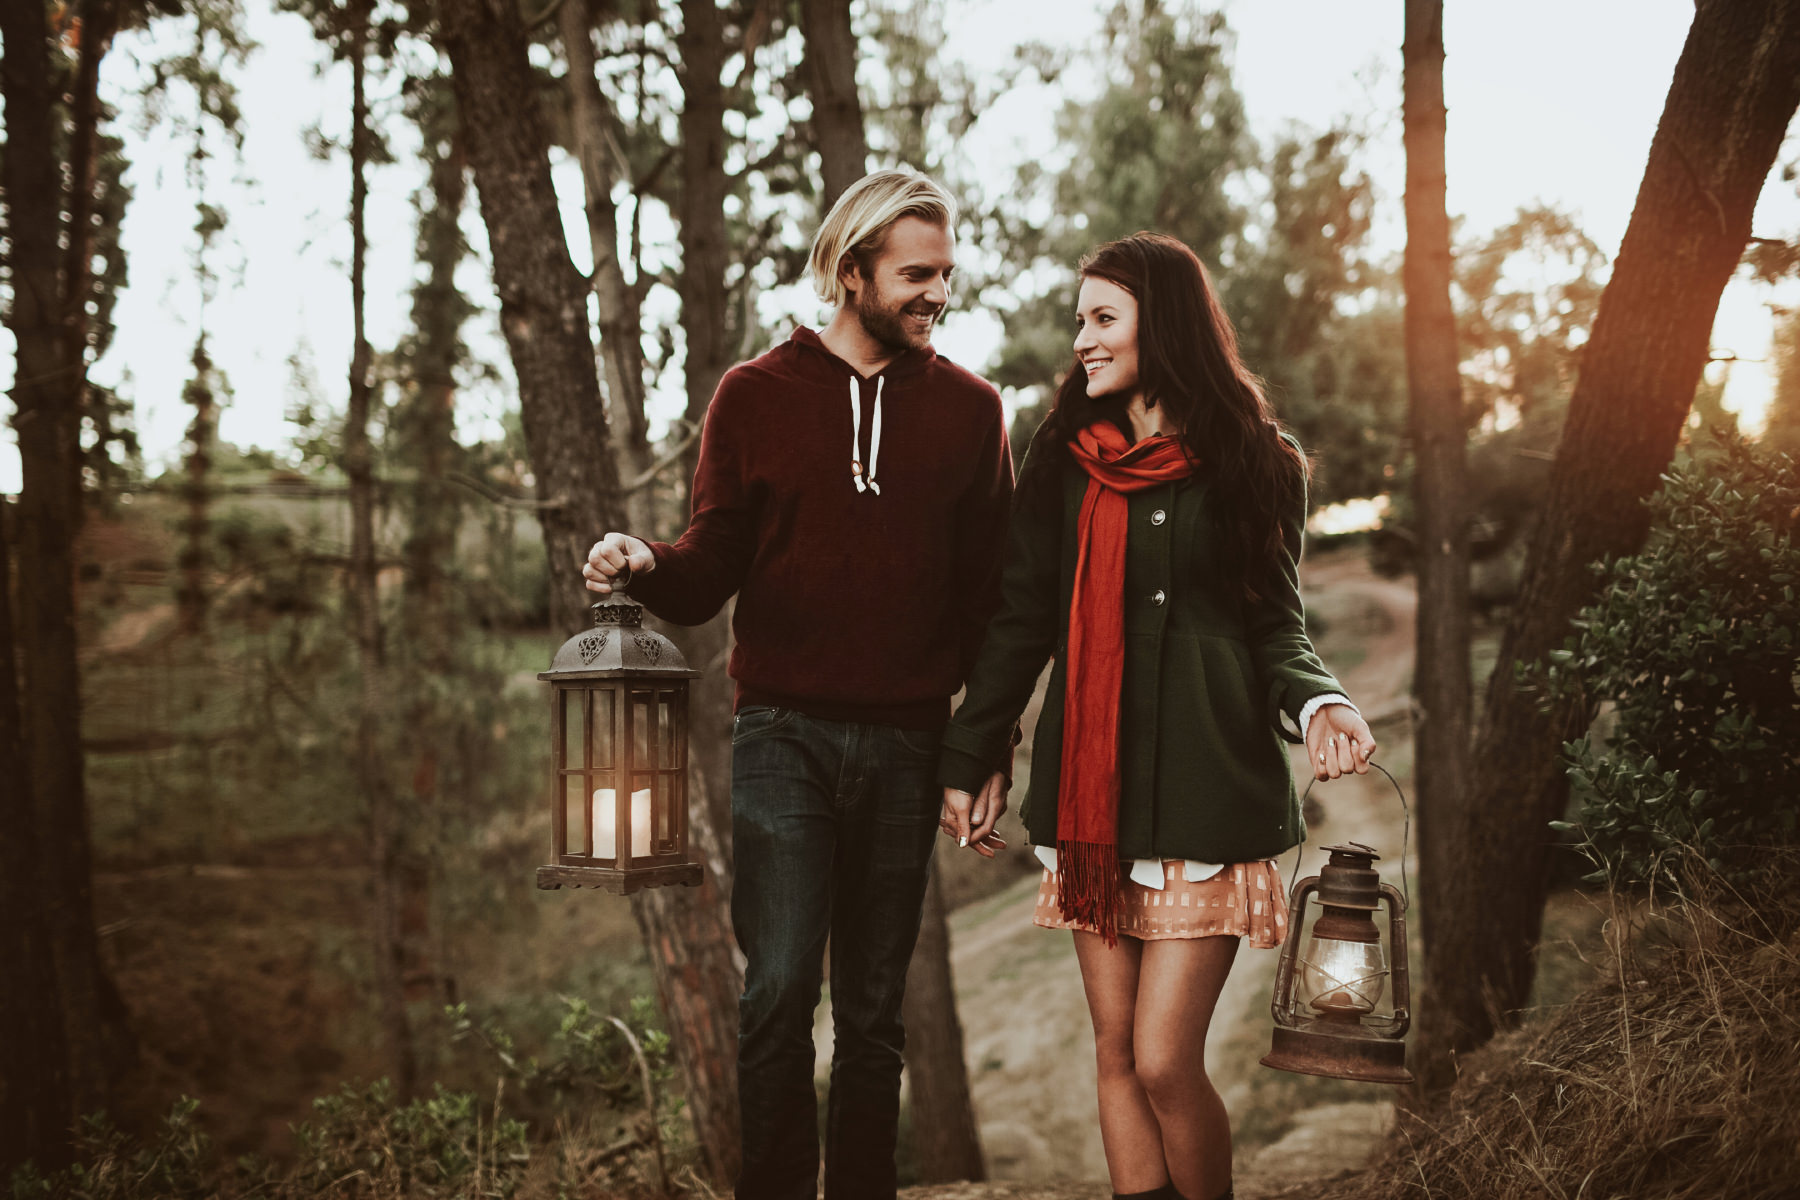 Engaged couple walking through the redwood trees of Bridle Trail with lanterns